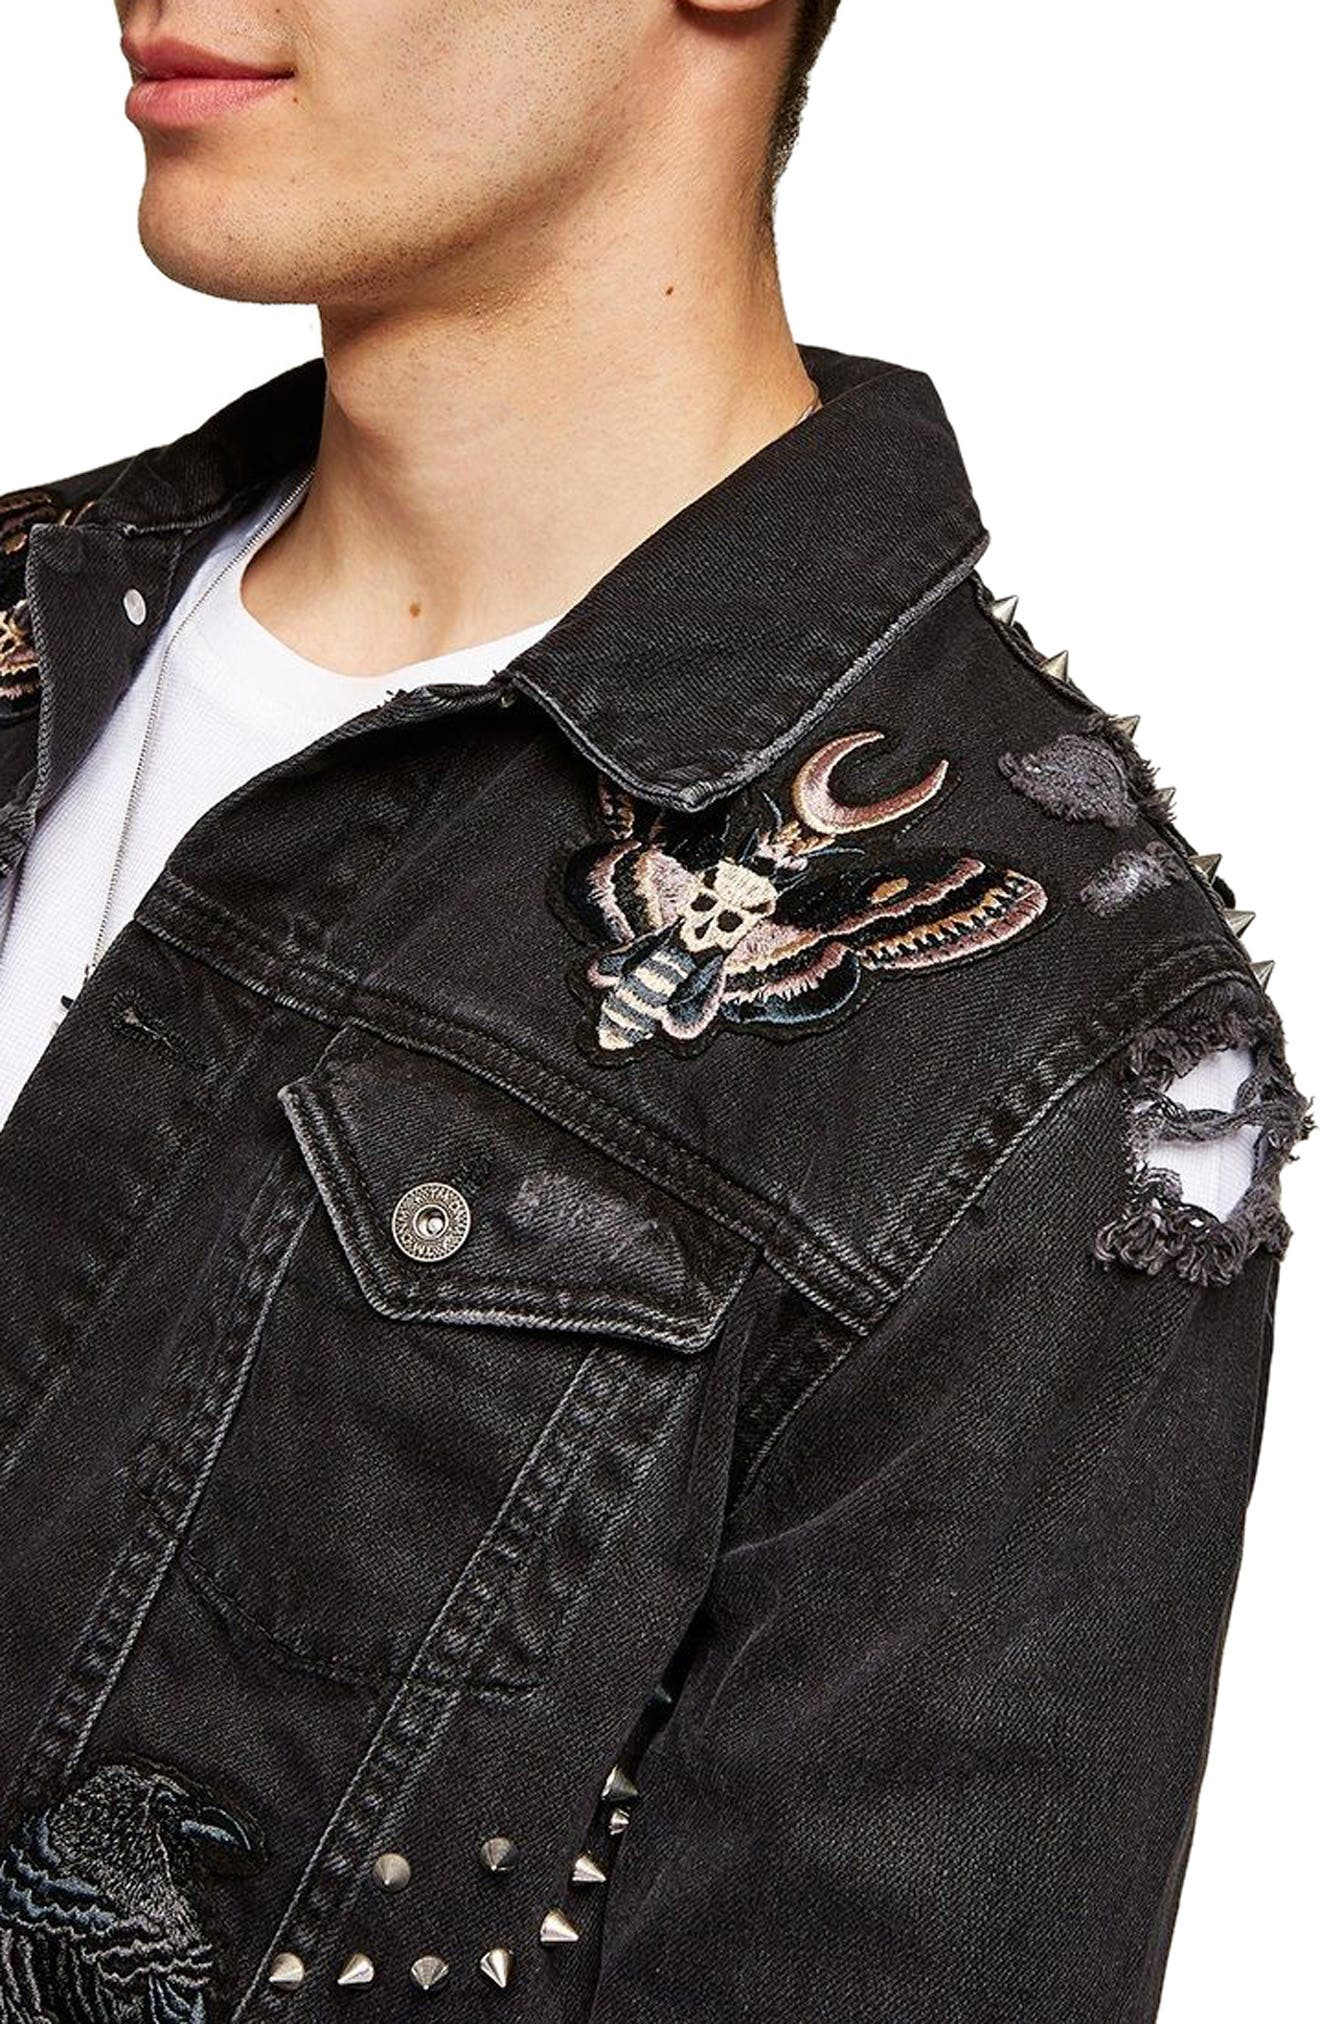 Sleepy Hollow Slim Fit Denim Jacket with Patches,                             Alternate thumbnail 3, color,                             001